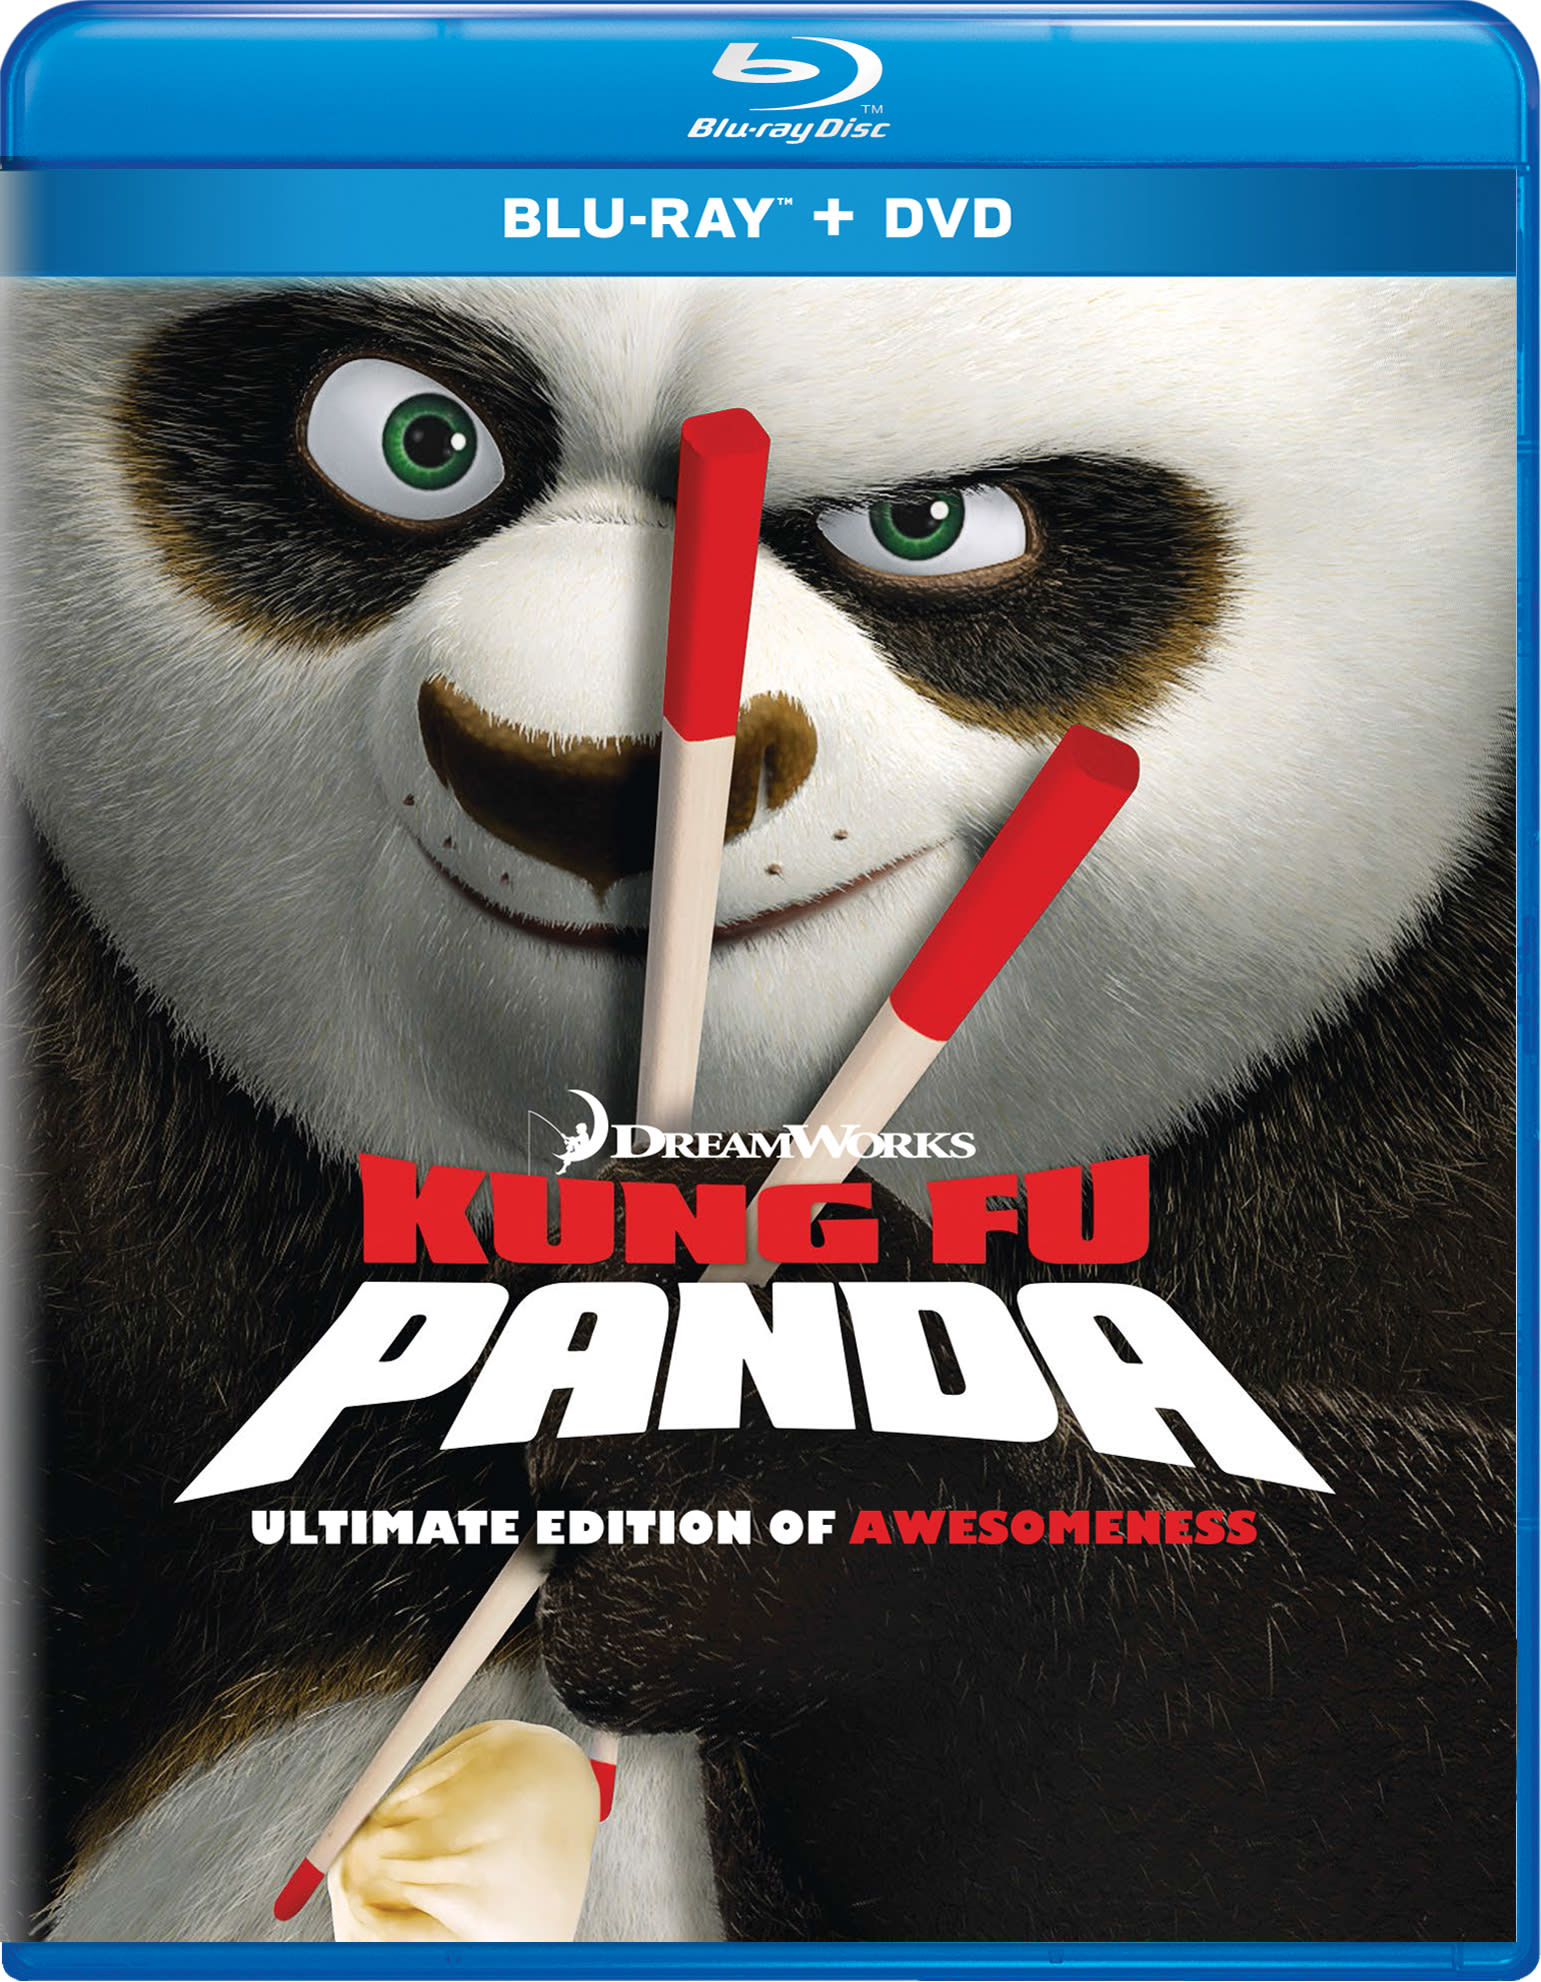 Kung Fu Panda (Ultimate Edition of Awesomeness + Digital) [Blu-ray]